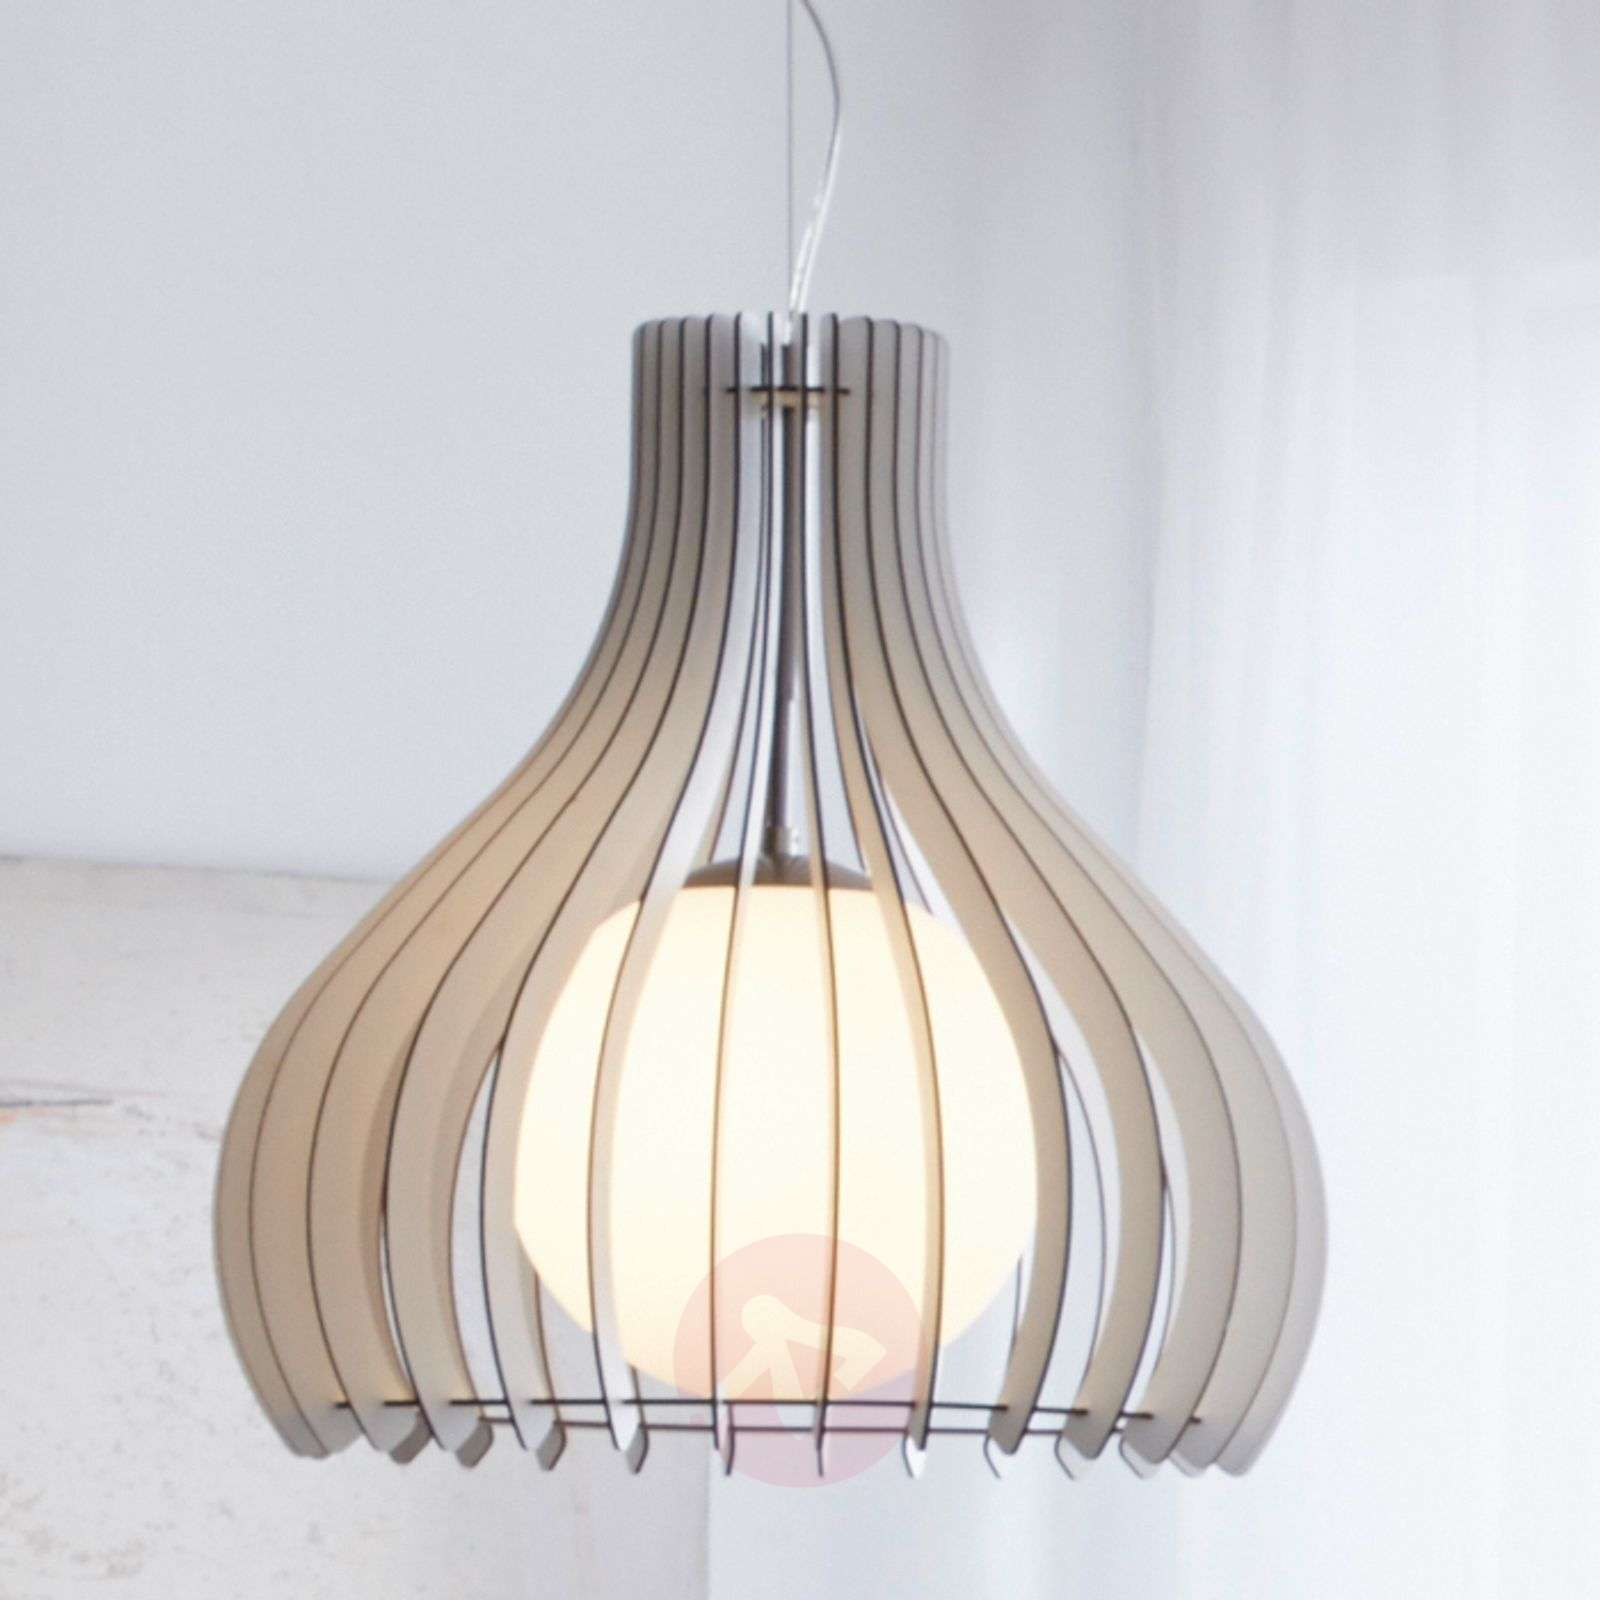 Wonderful Tindori hanging lamp, made of wood-3031821-02